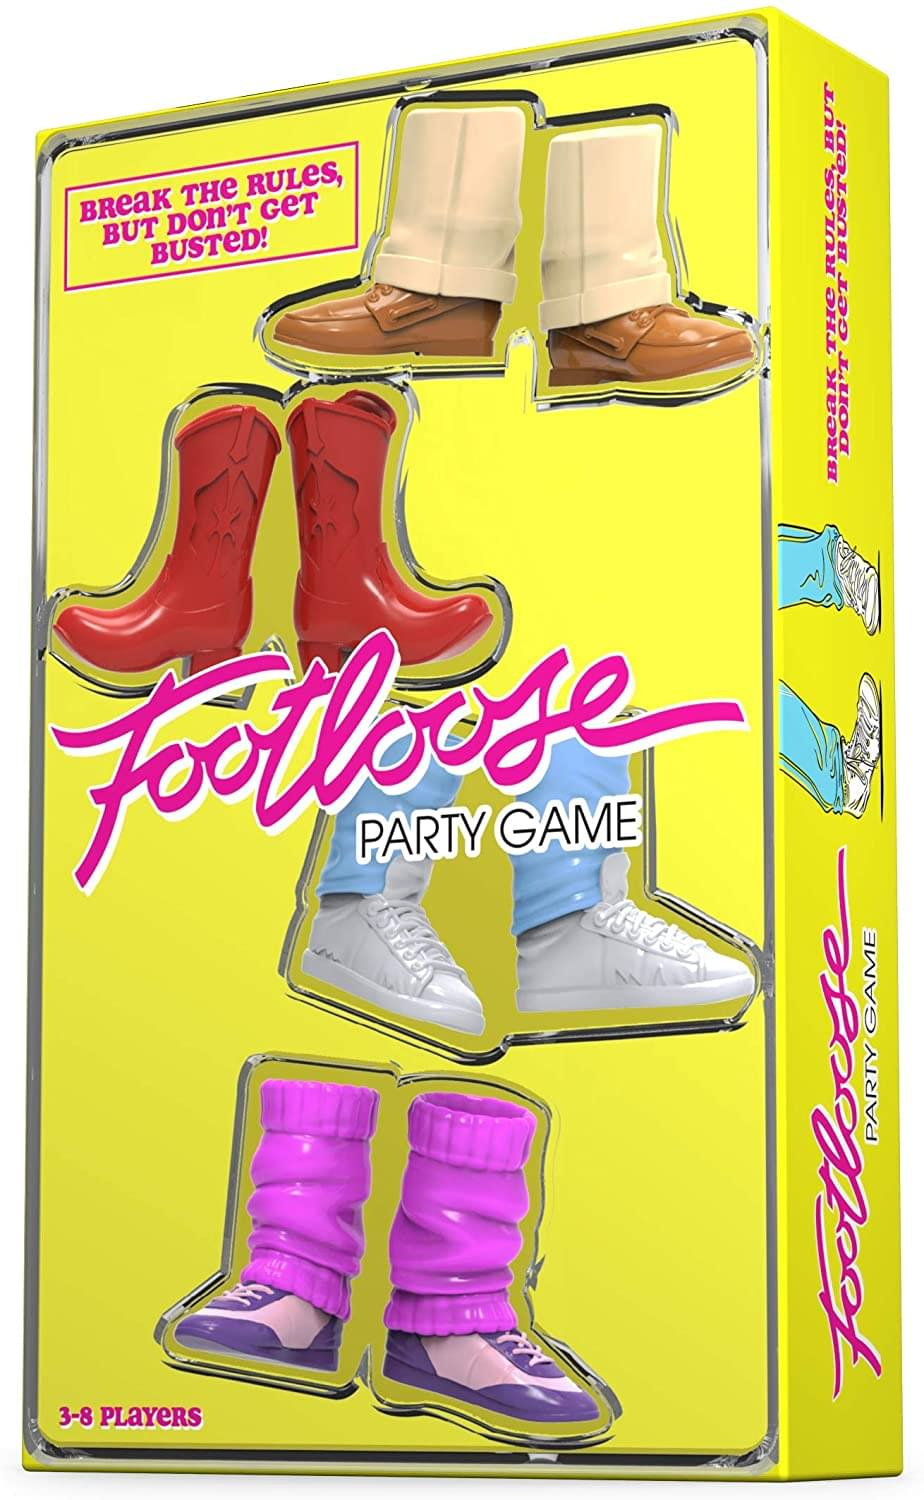 Funko Games Footloose Party Game | 3-8 Players